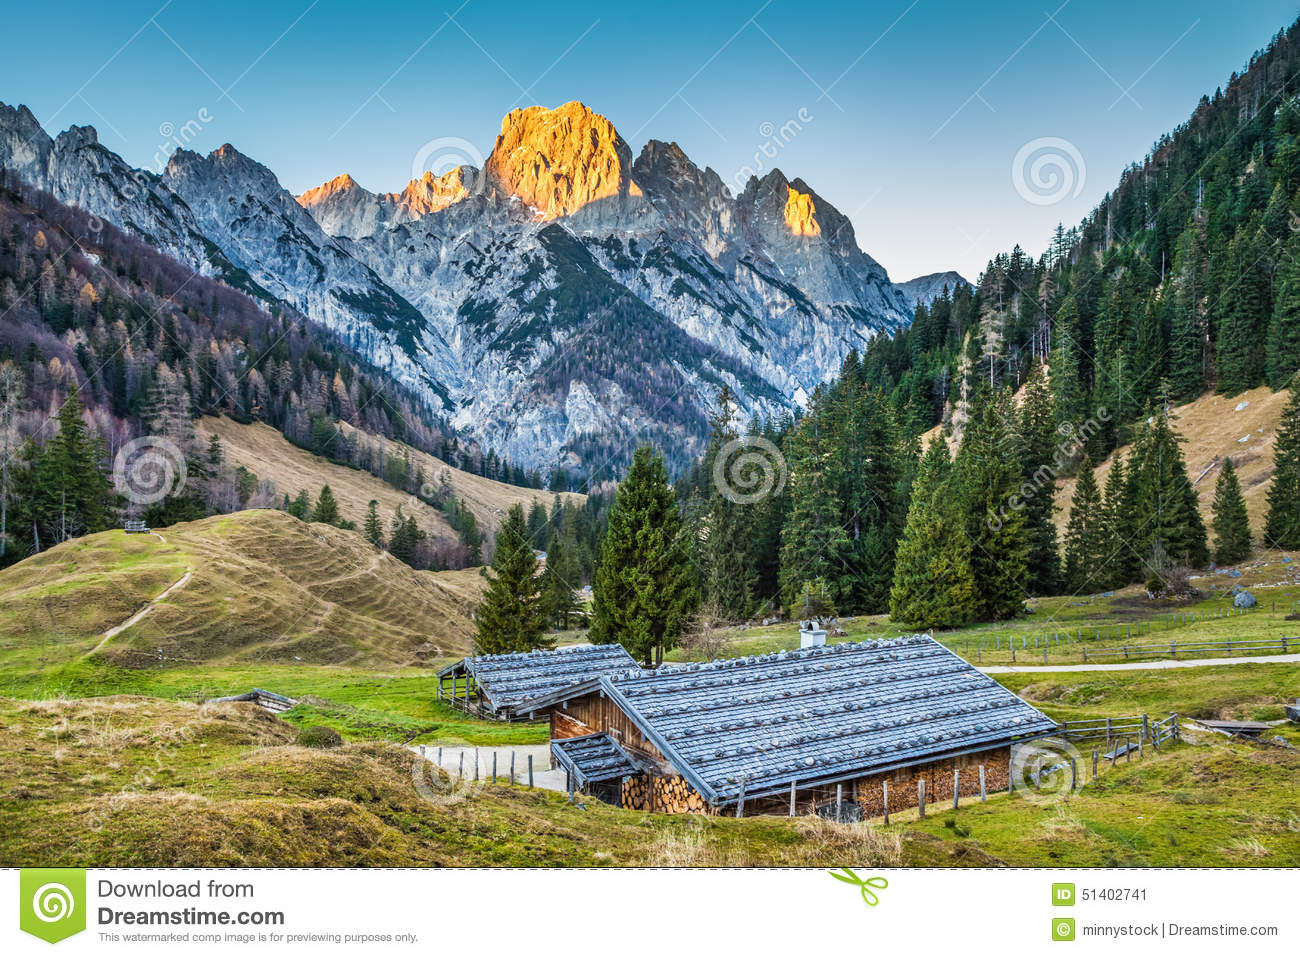 Beautiful landscape in the Alps with traditional mountain chalets